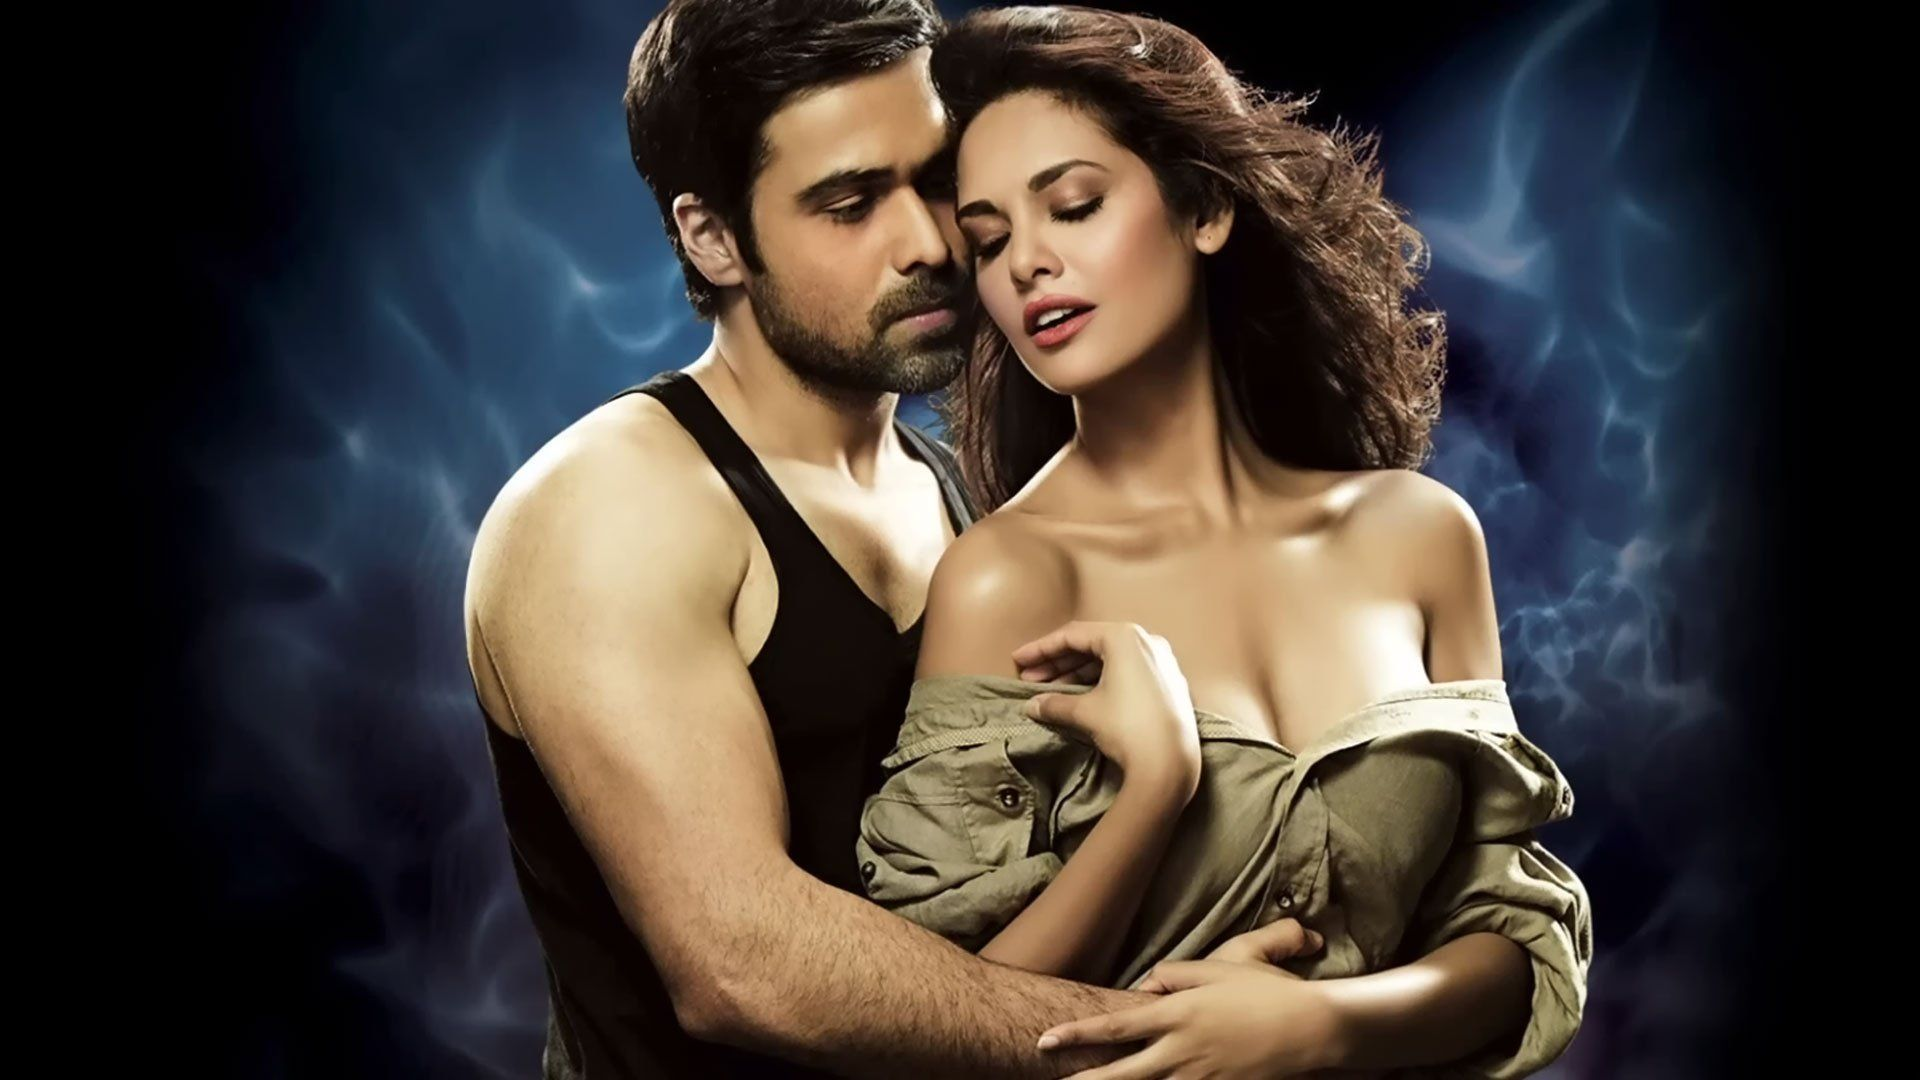 Romantic Bollywood Movie Wallpapers Indian Love Wallpaper Film Romantici Hindi Movies Danza